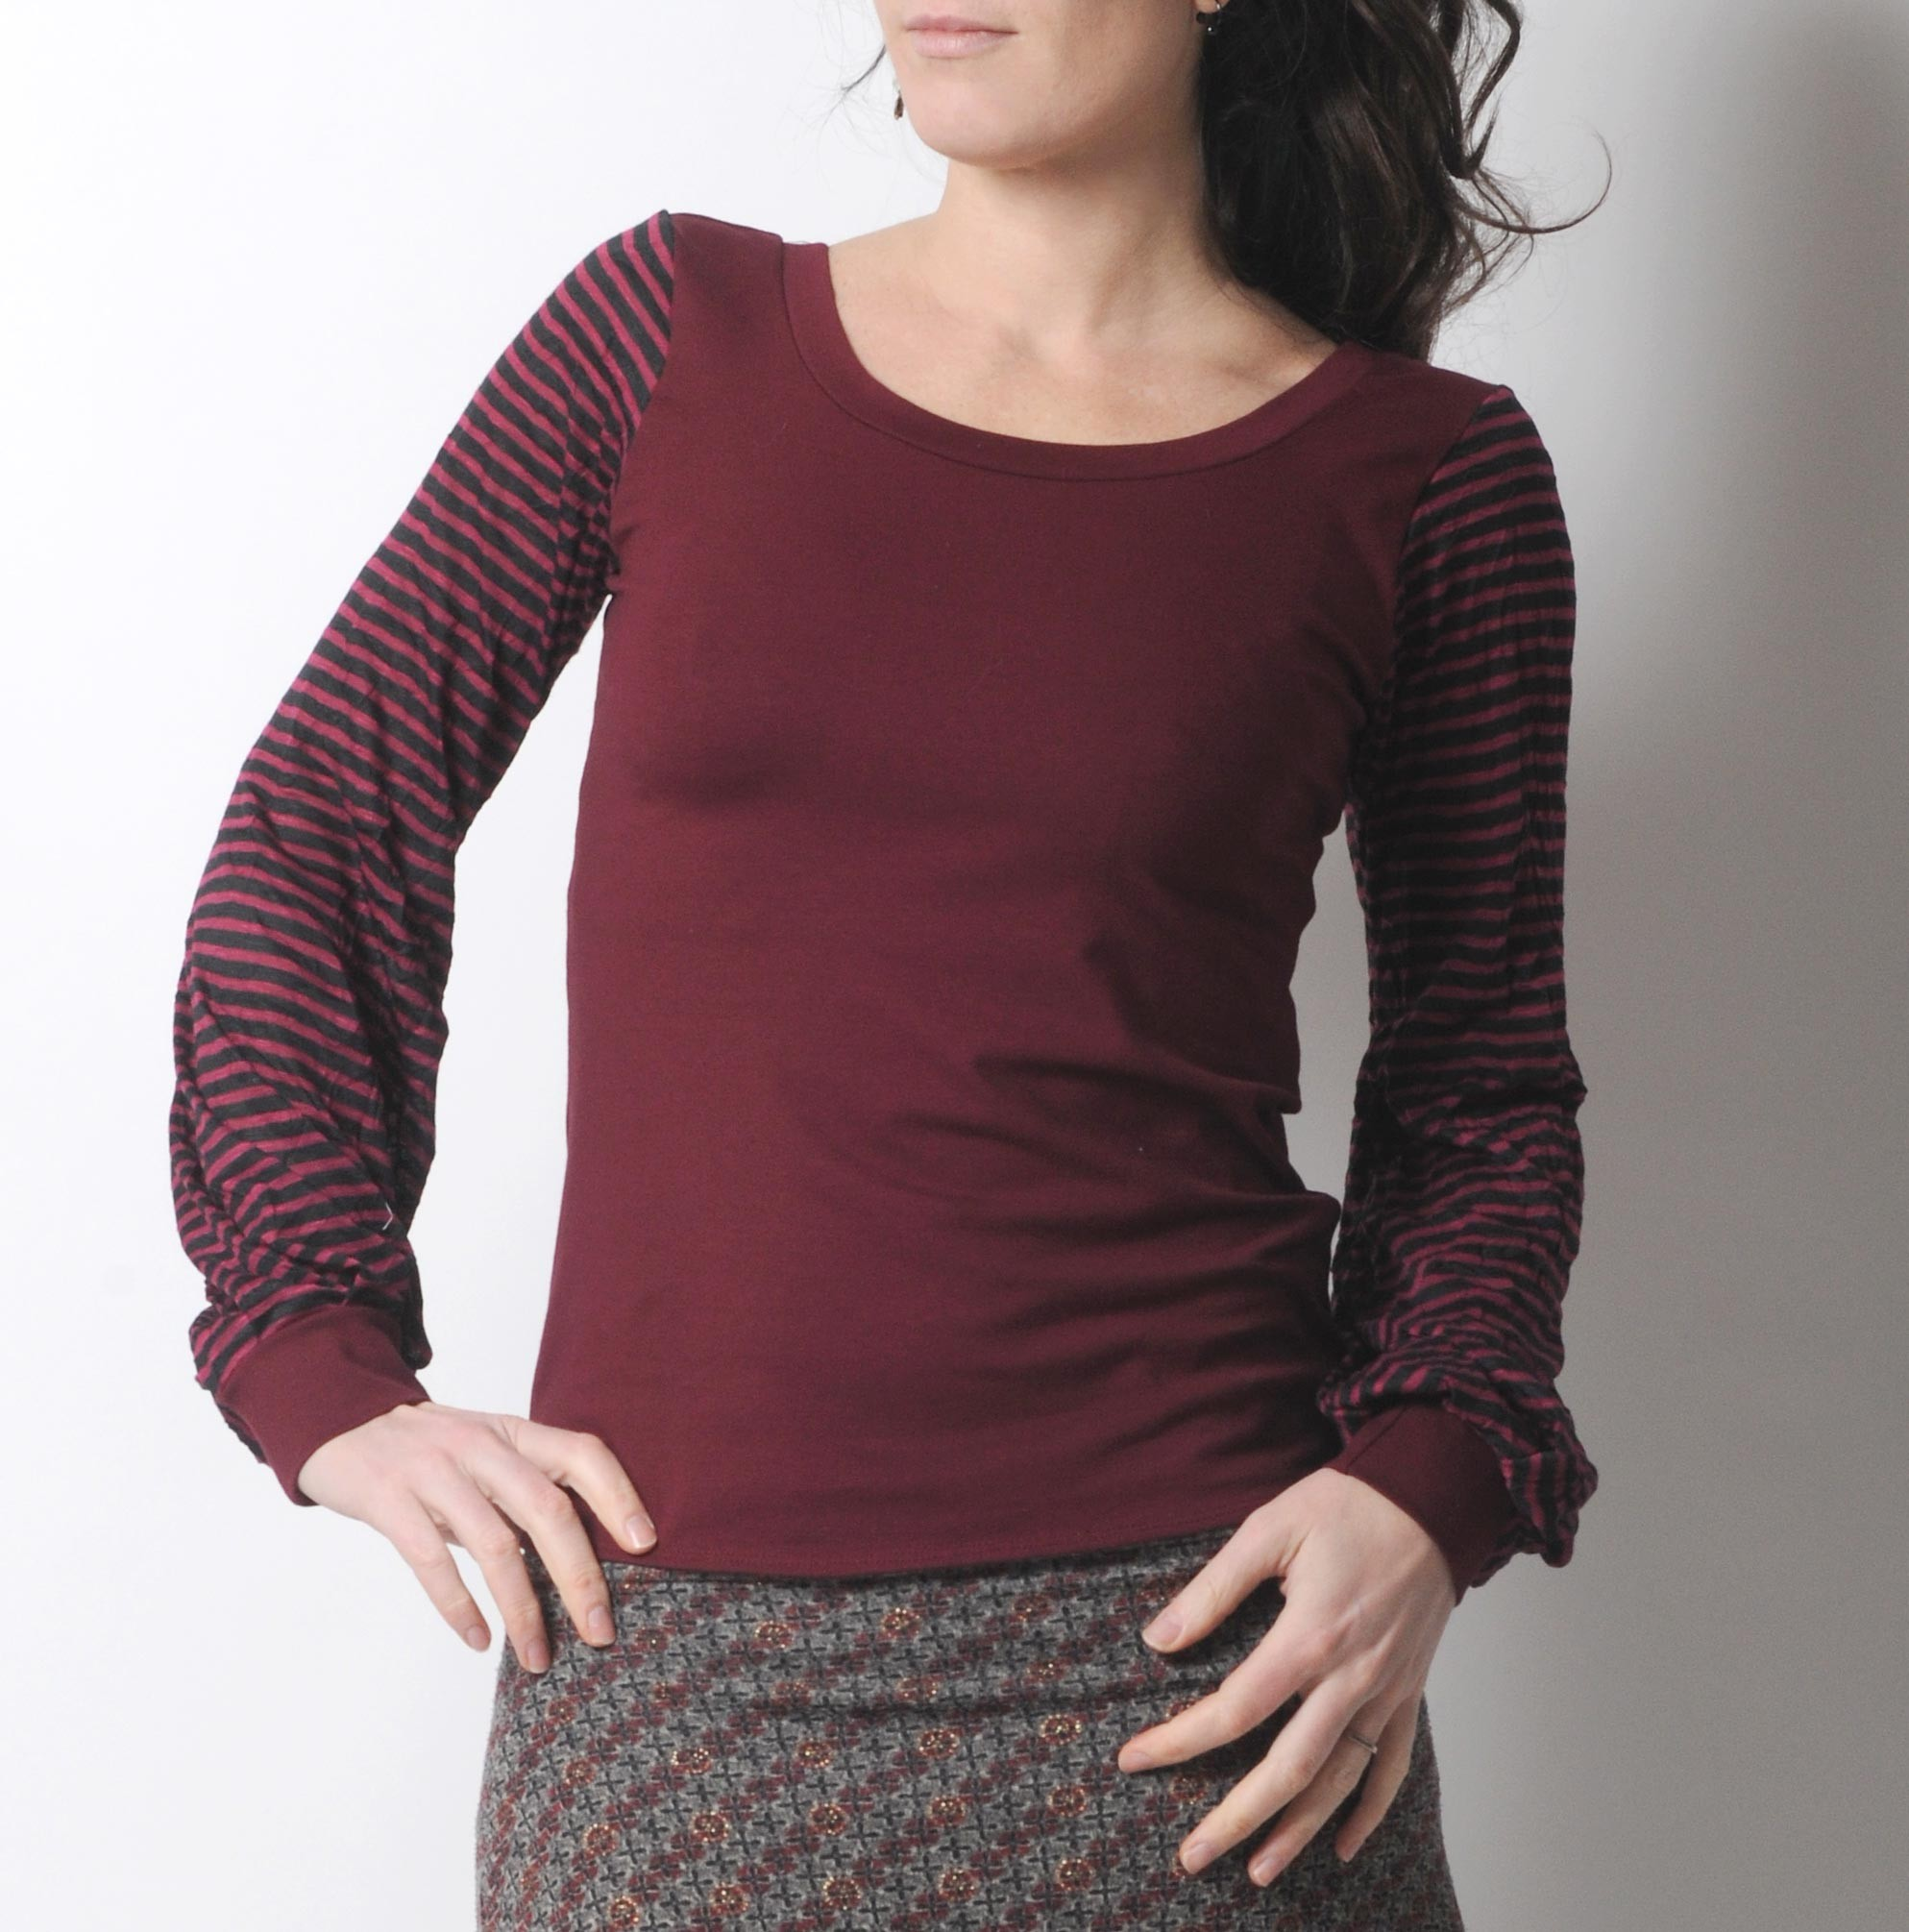 af96615ba07 ... Handmade top in crimson red cotton jersey and thin striped jersey for  the sleeves. Long sleeves